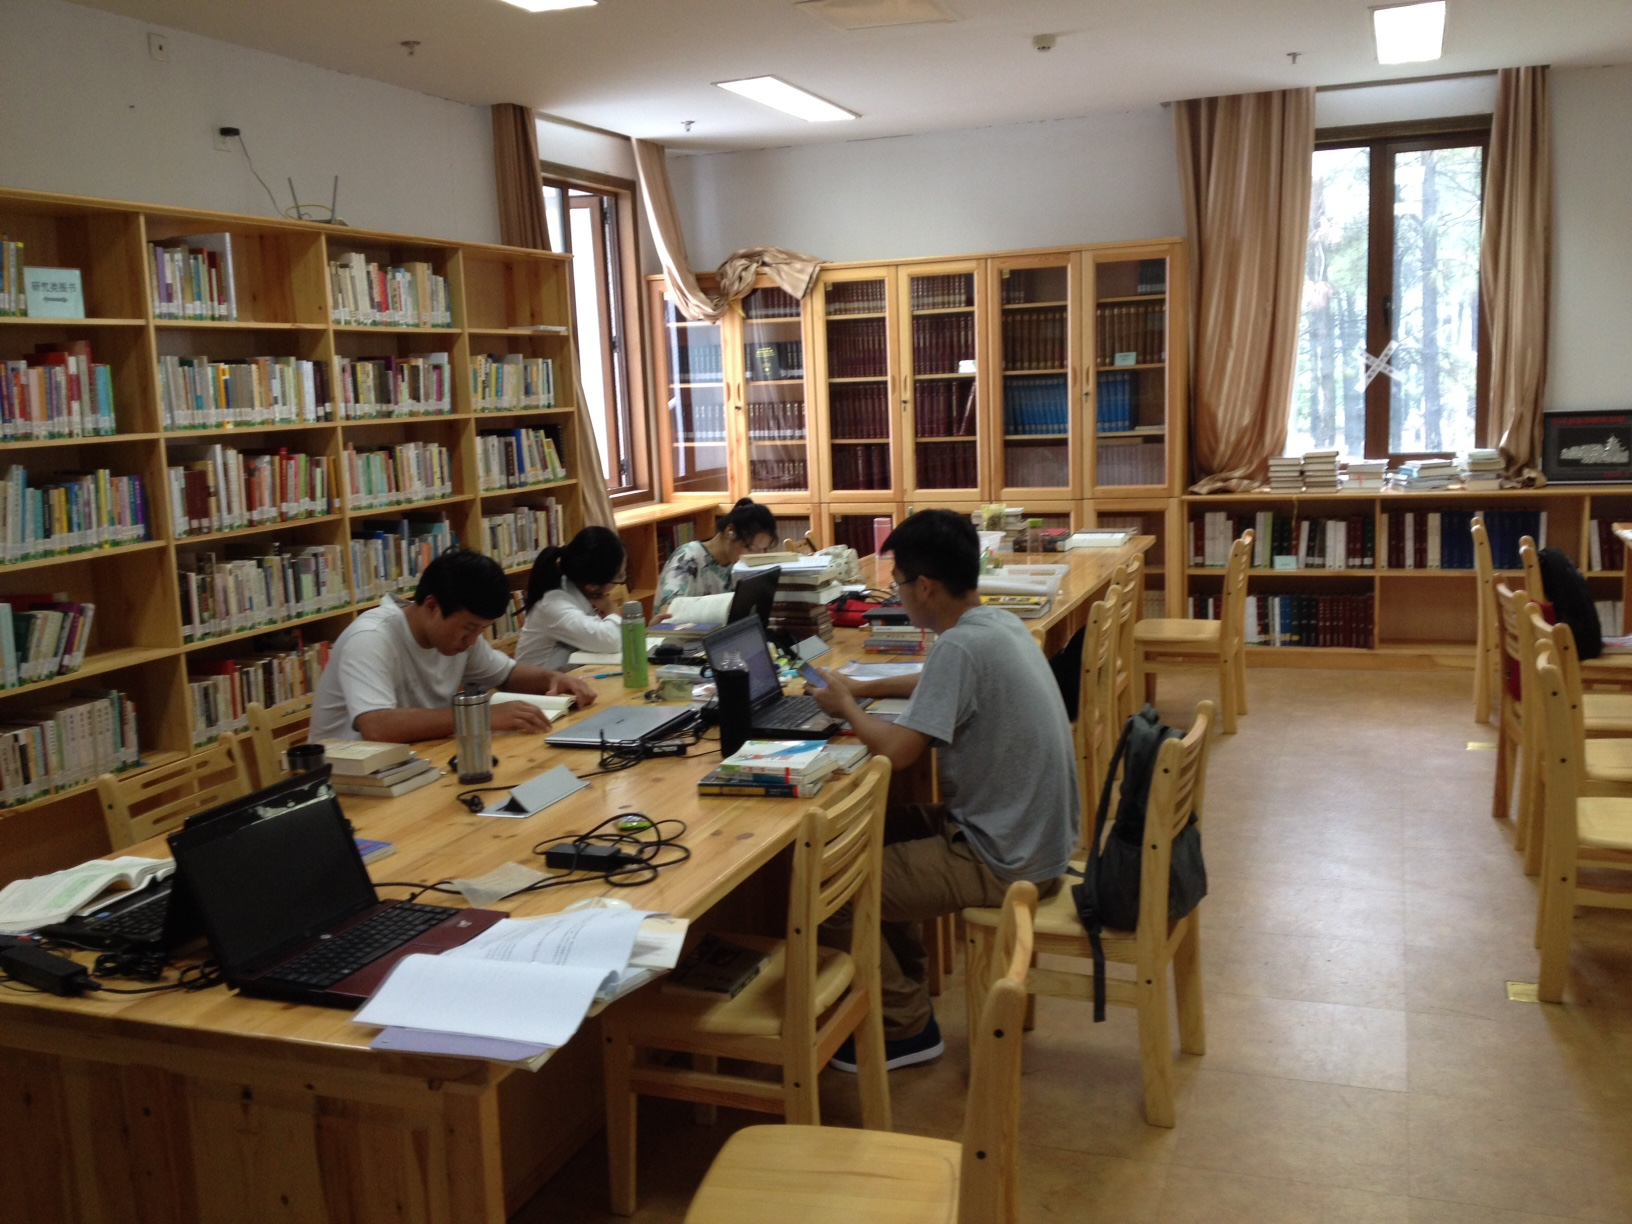 Students studying in the library of the Nanjing Union Theological Seminary